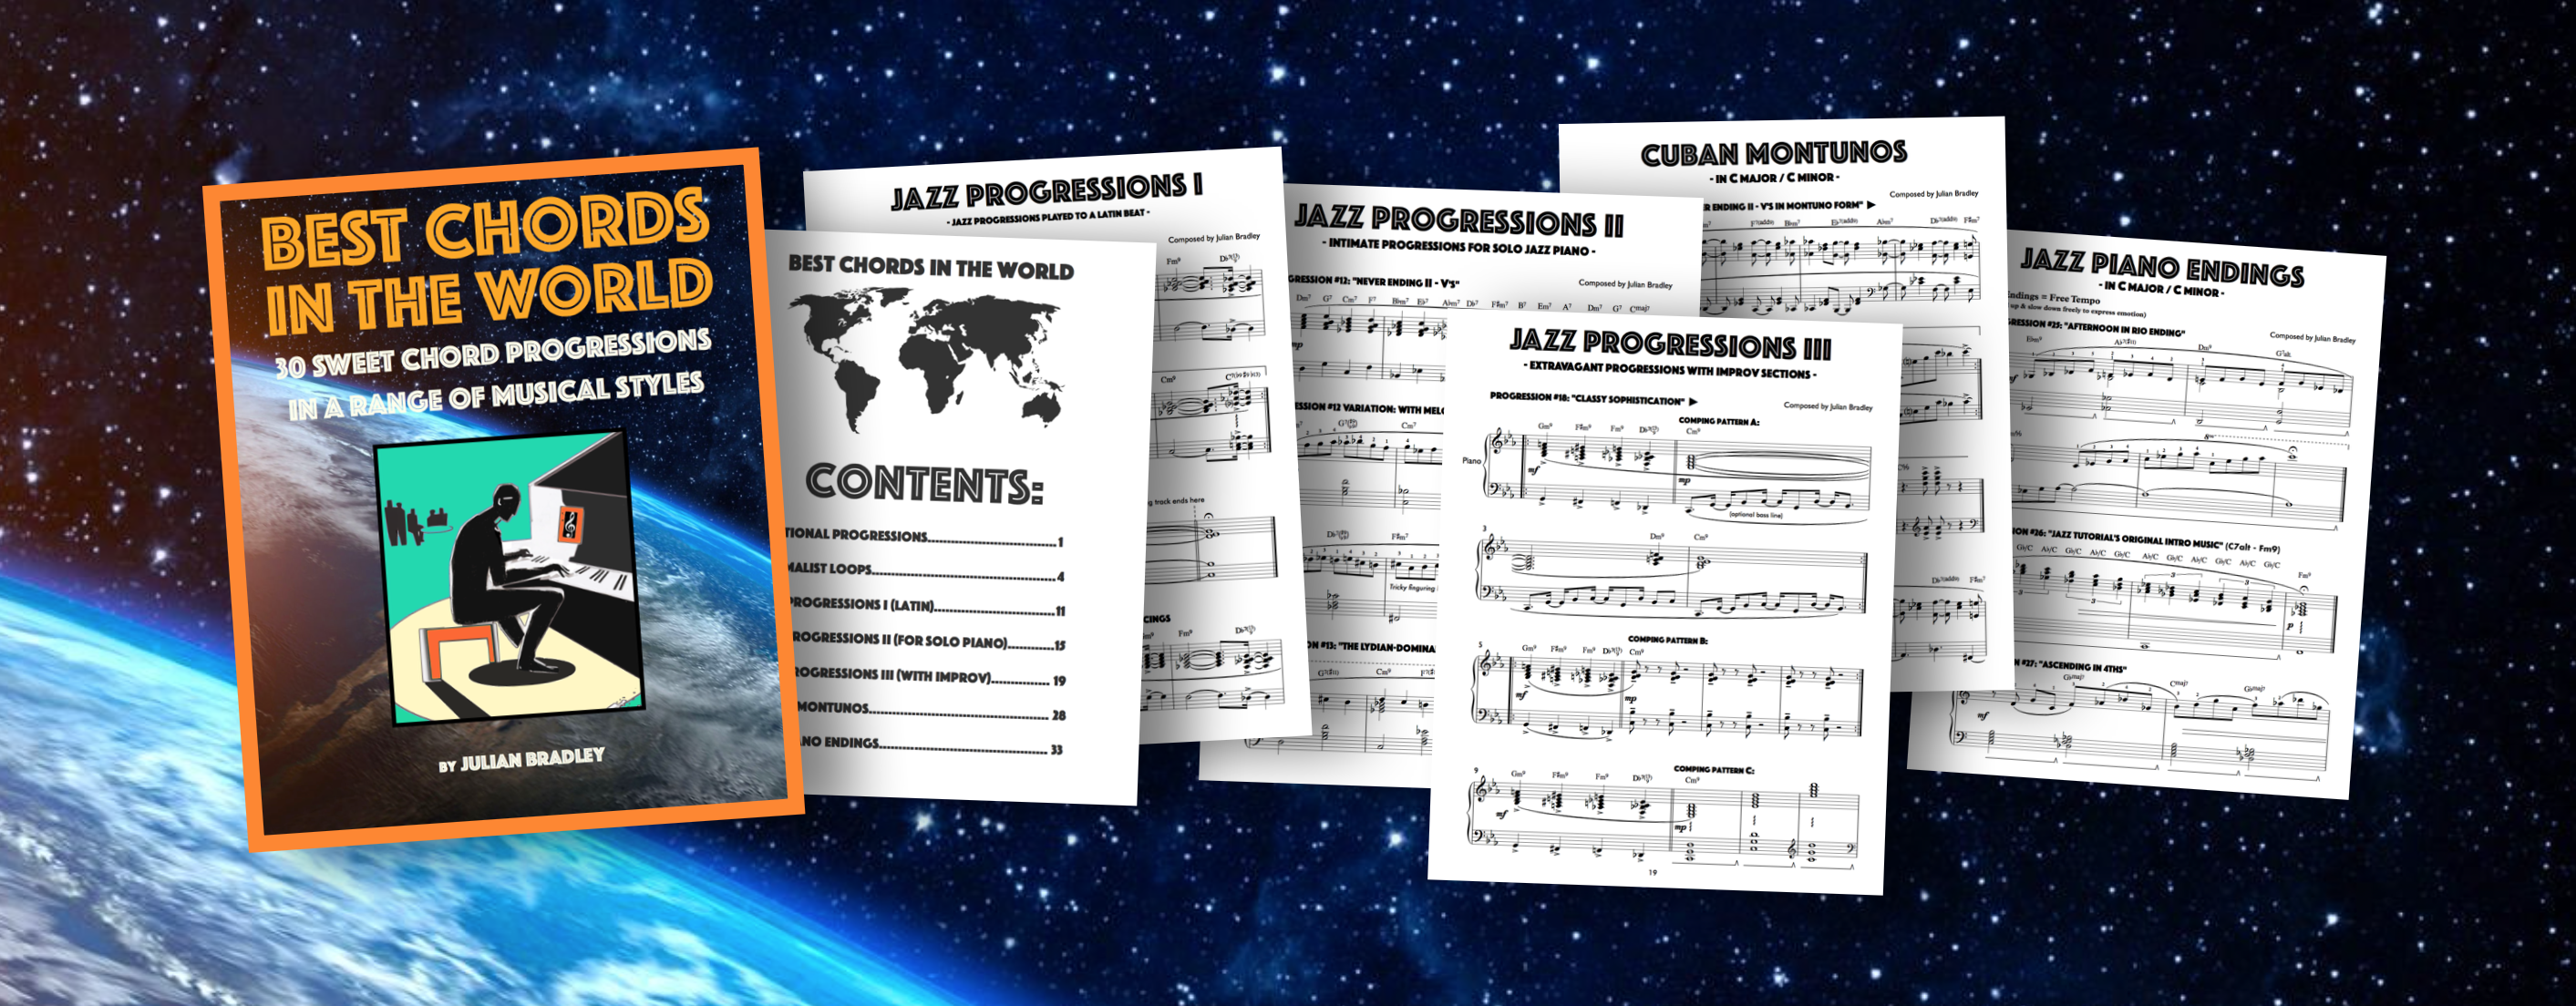 Best Chords In The World ebook